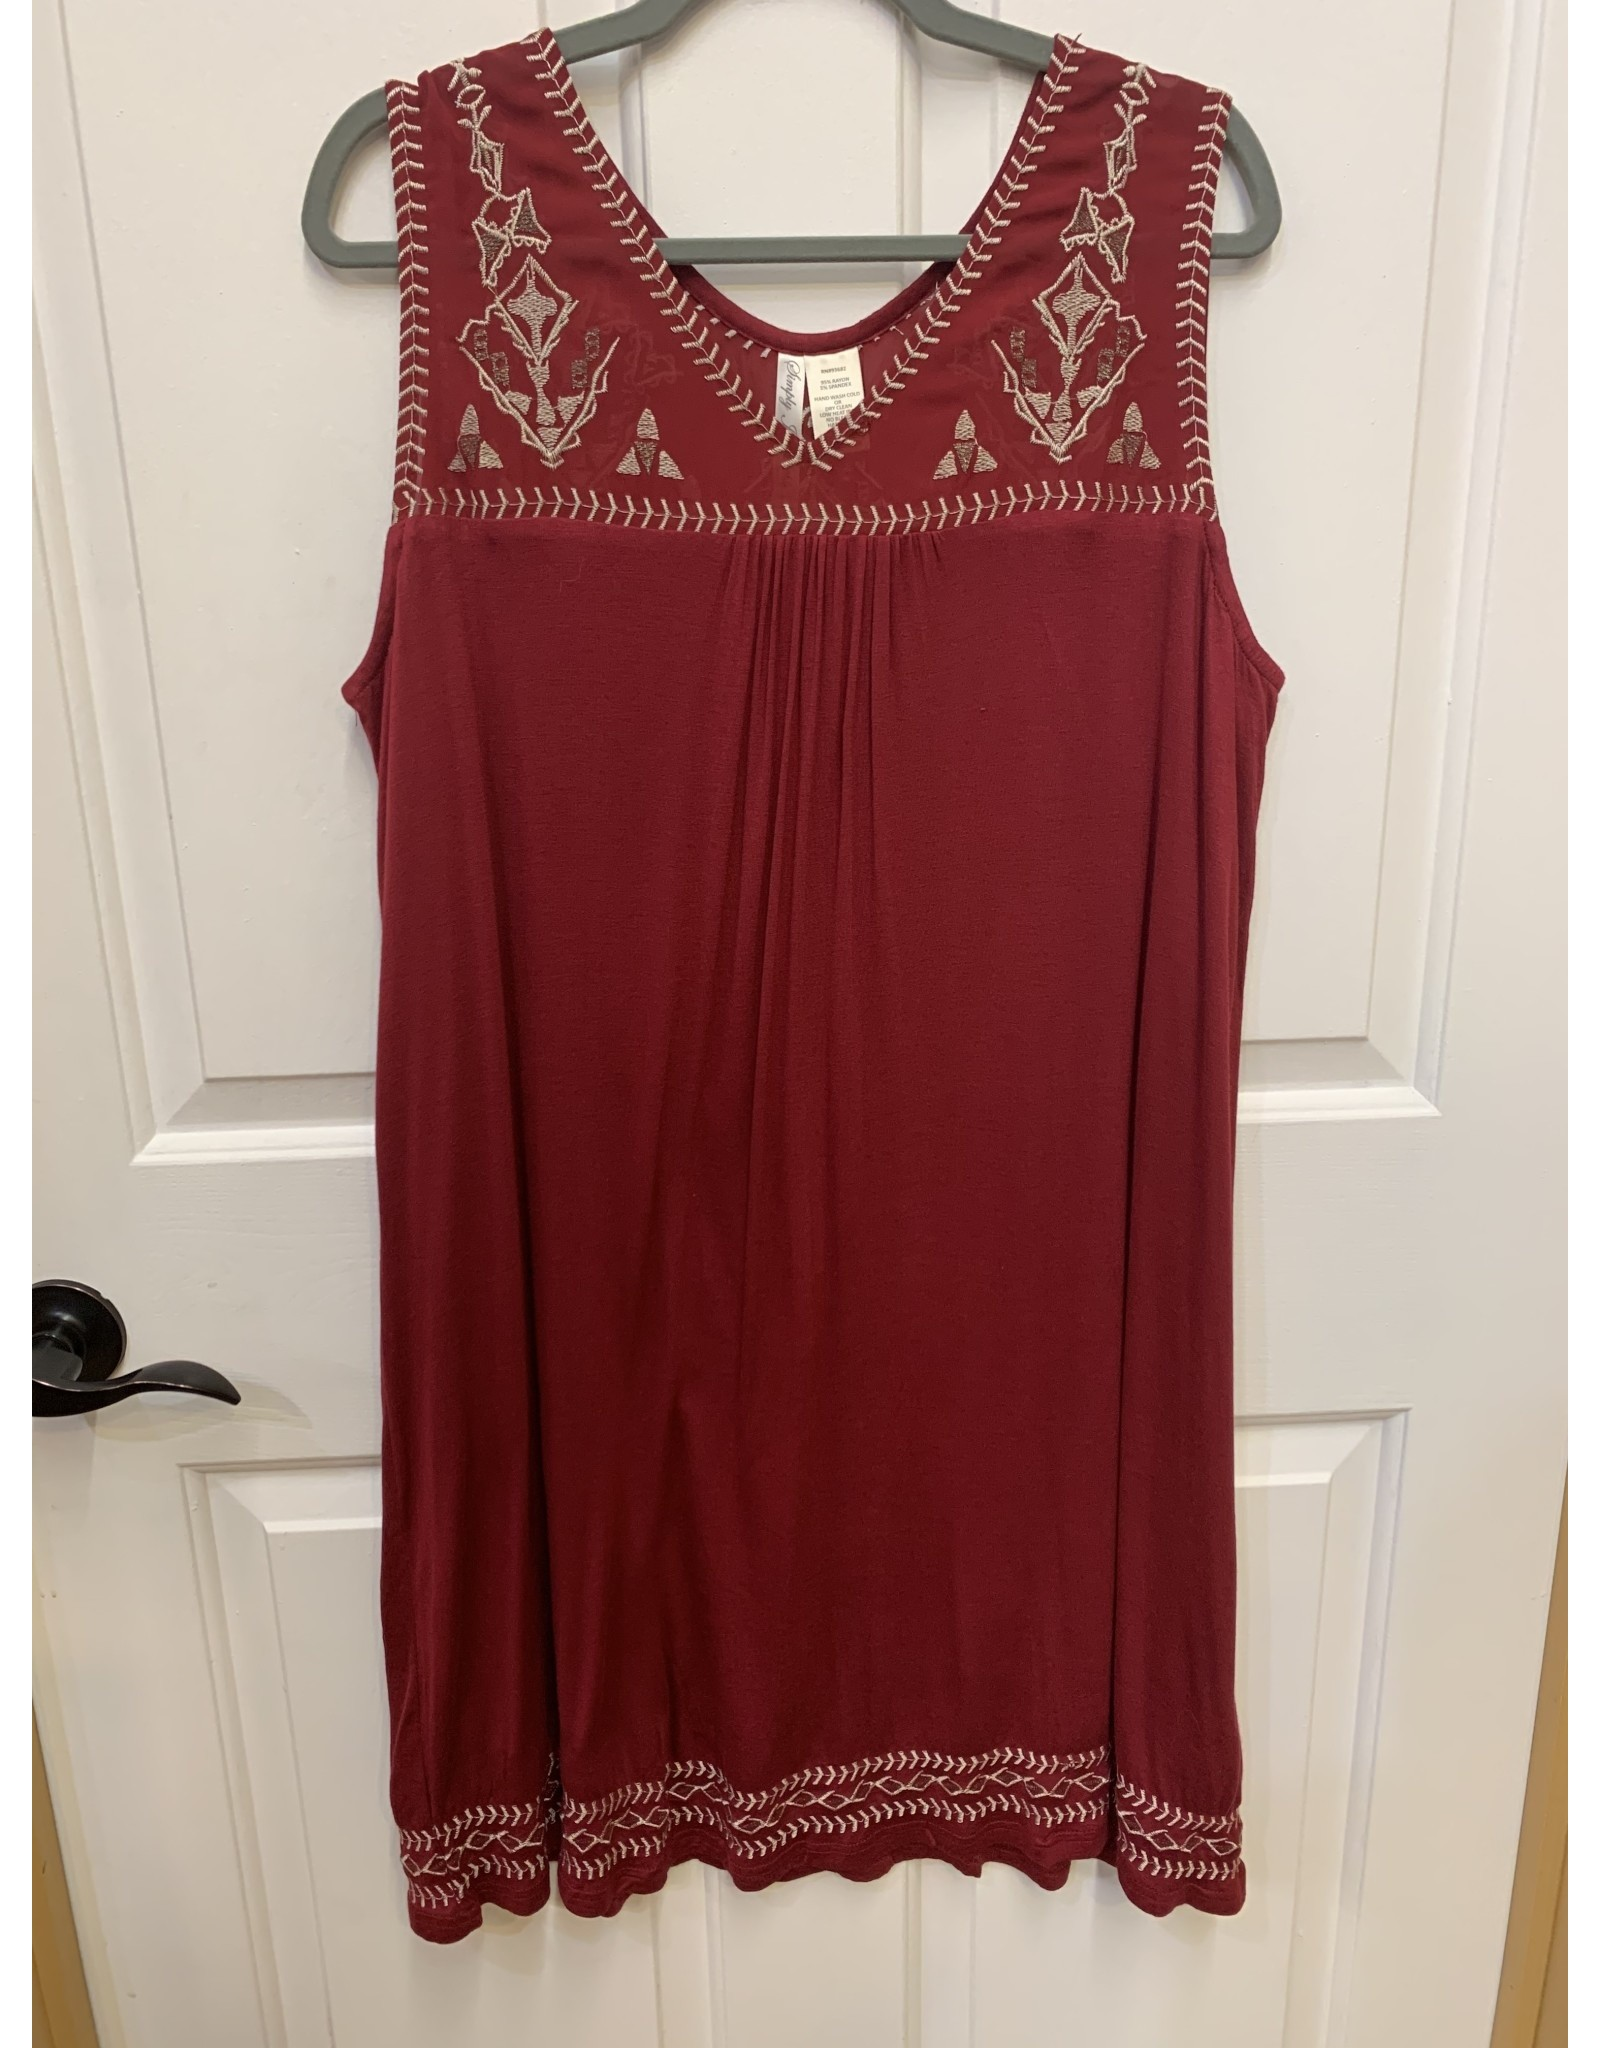 RED SOLID COLOR SLEEVELESS DRESS WITH GOLD EMBROIDERED DETAIL